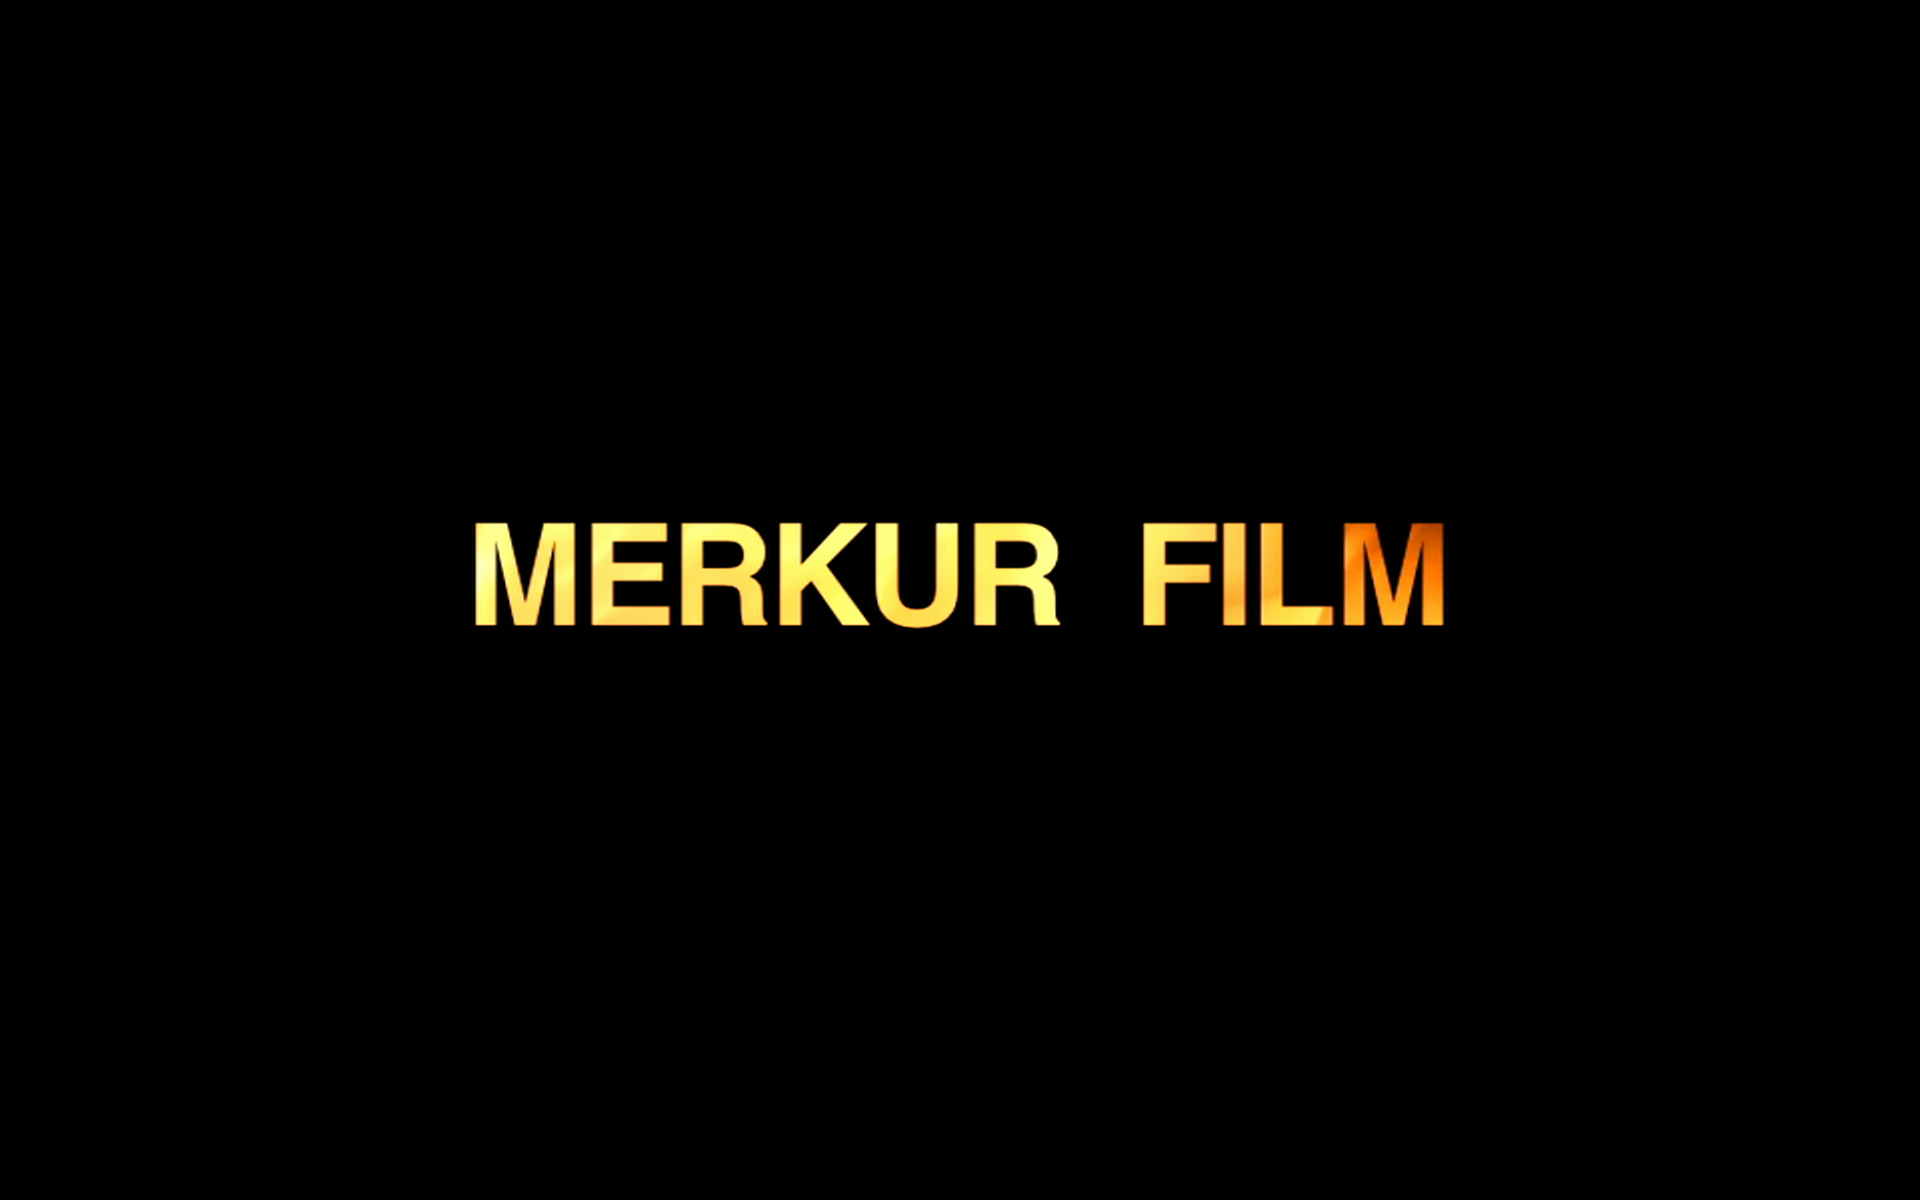 Merkur Film AS